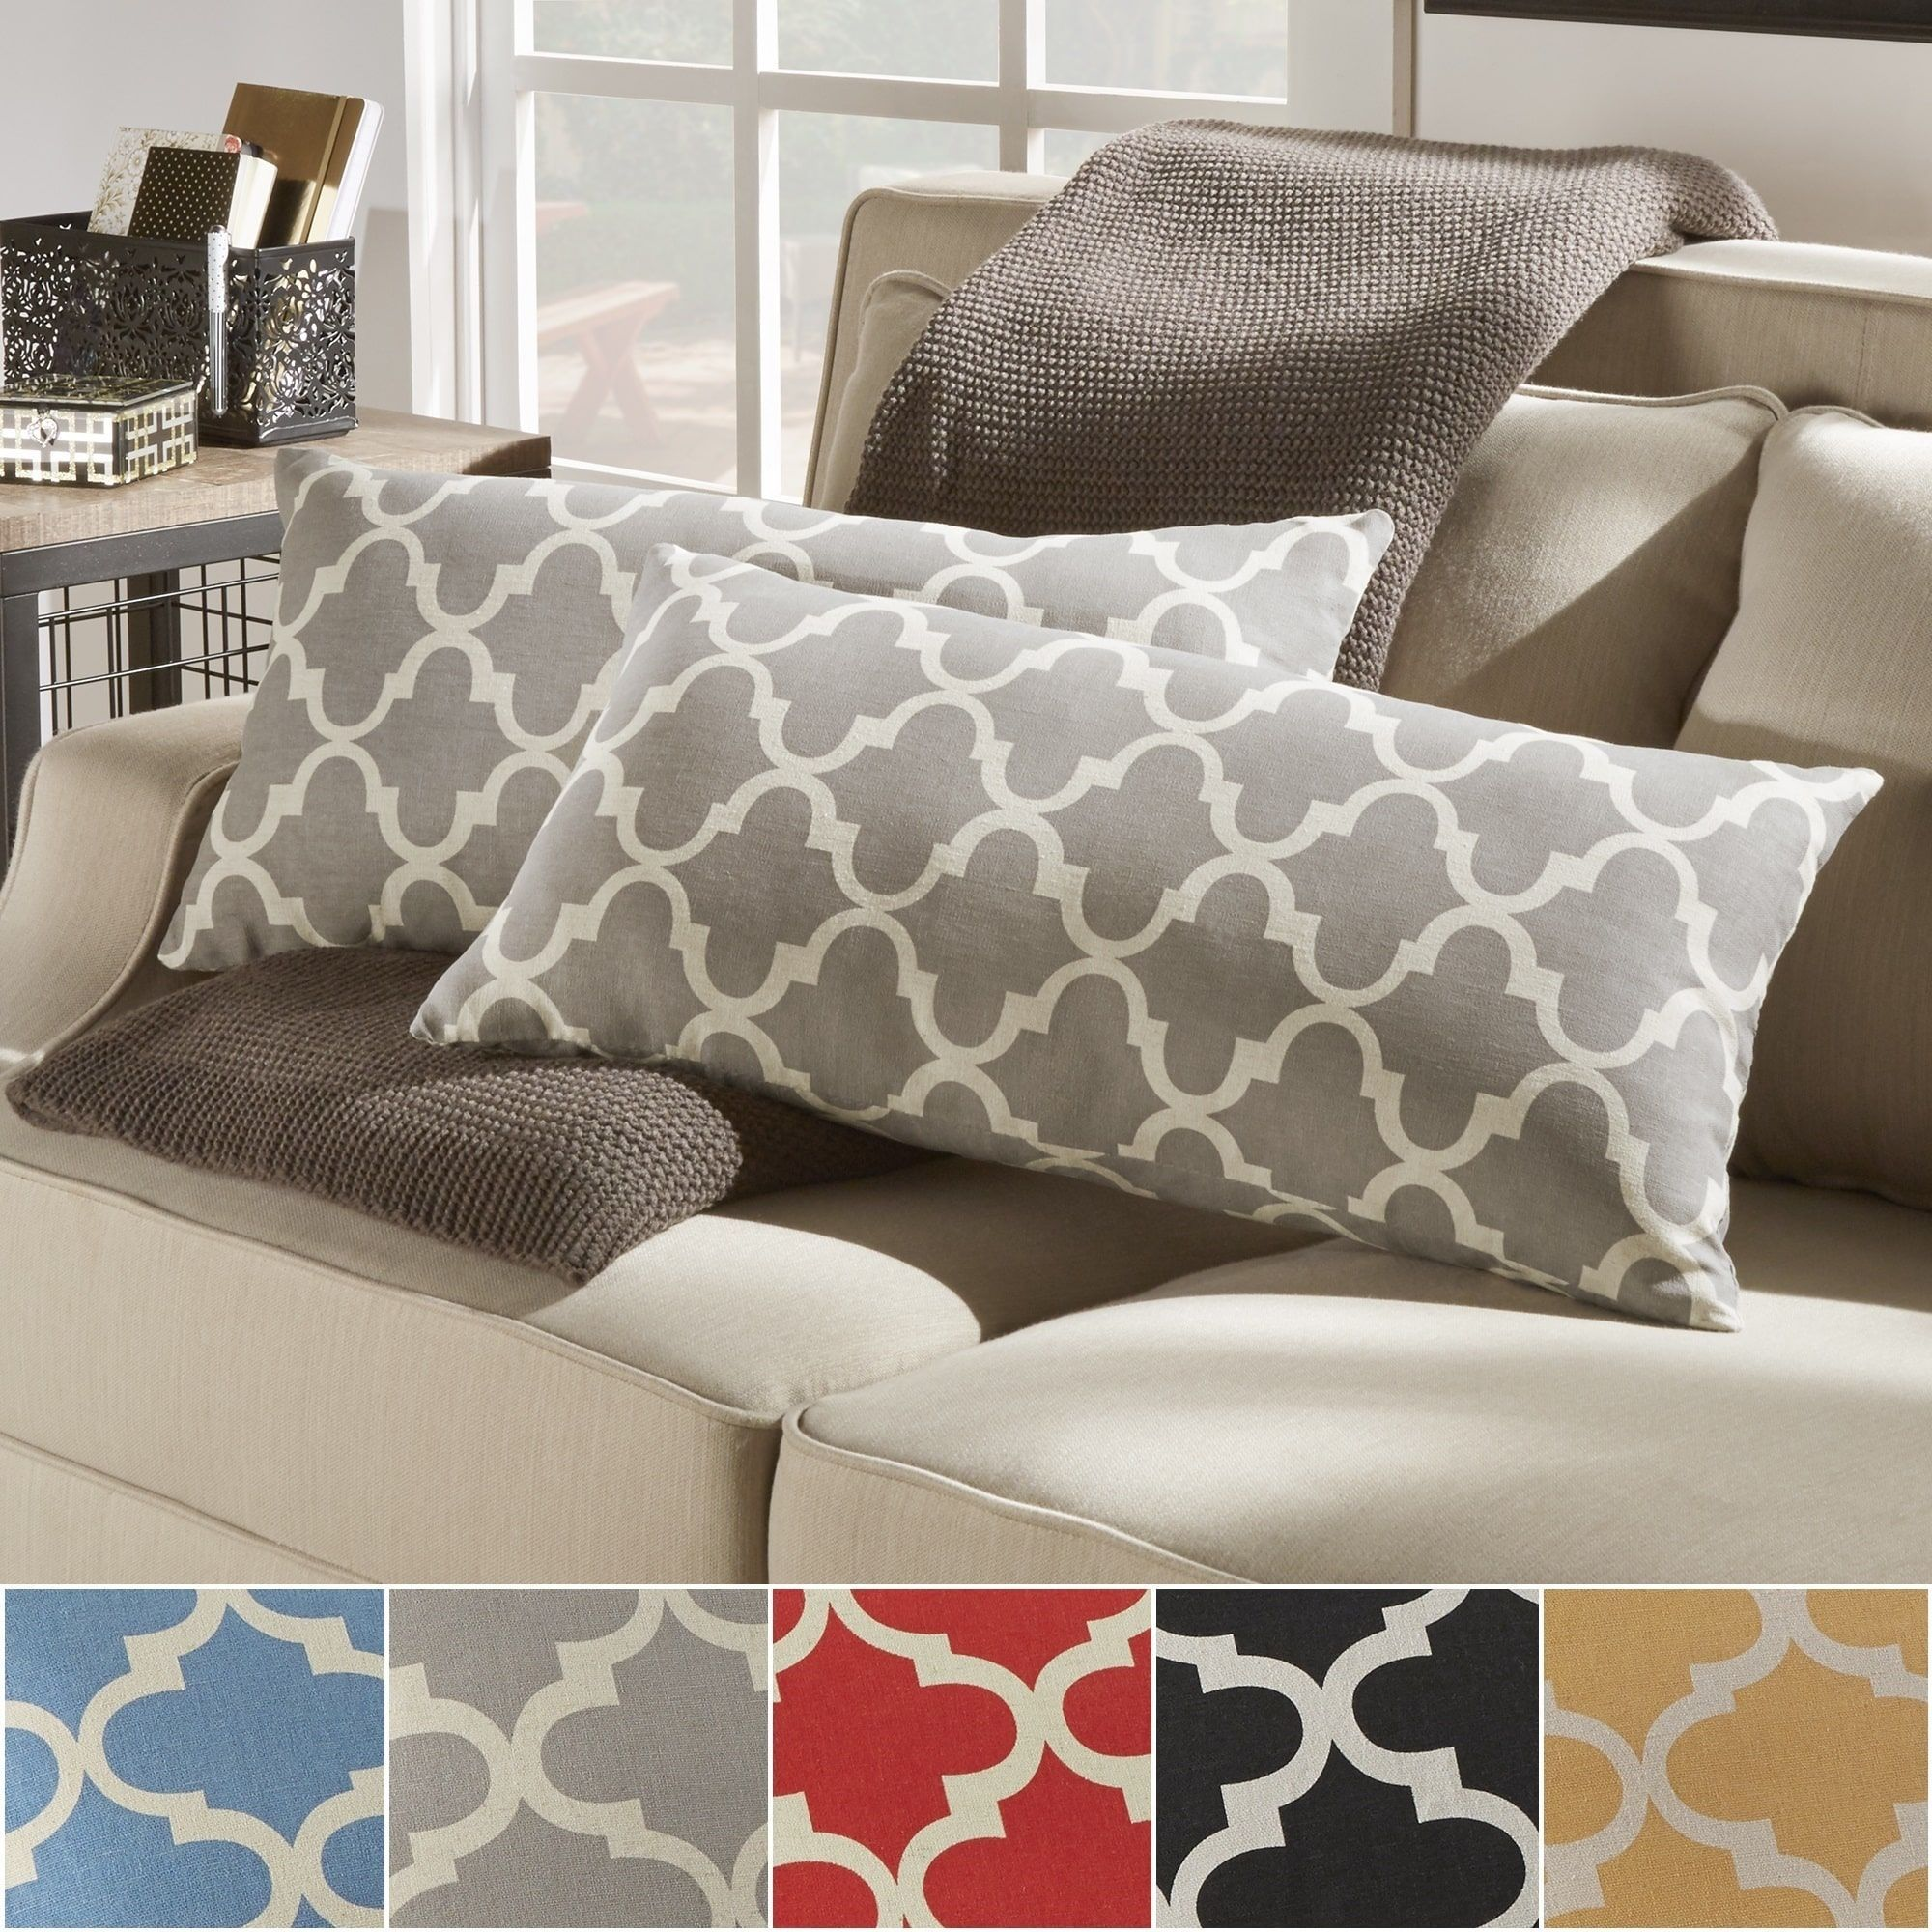 Montvale Moroccan Pattern Toss Kidney Pillow by Inspire Q